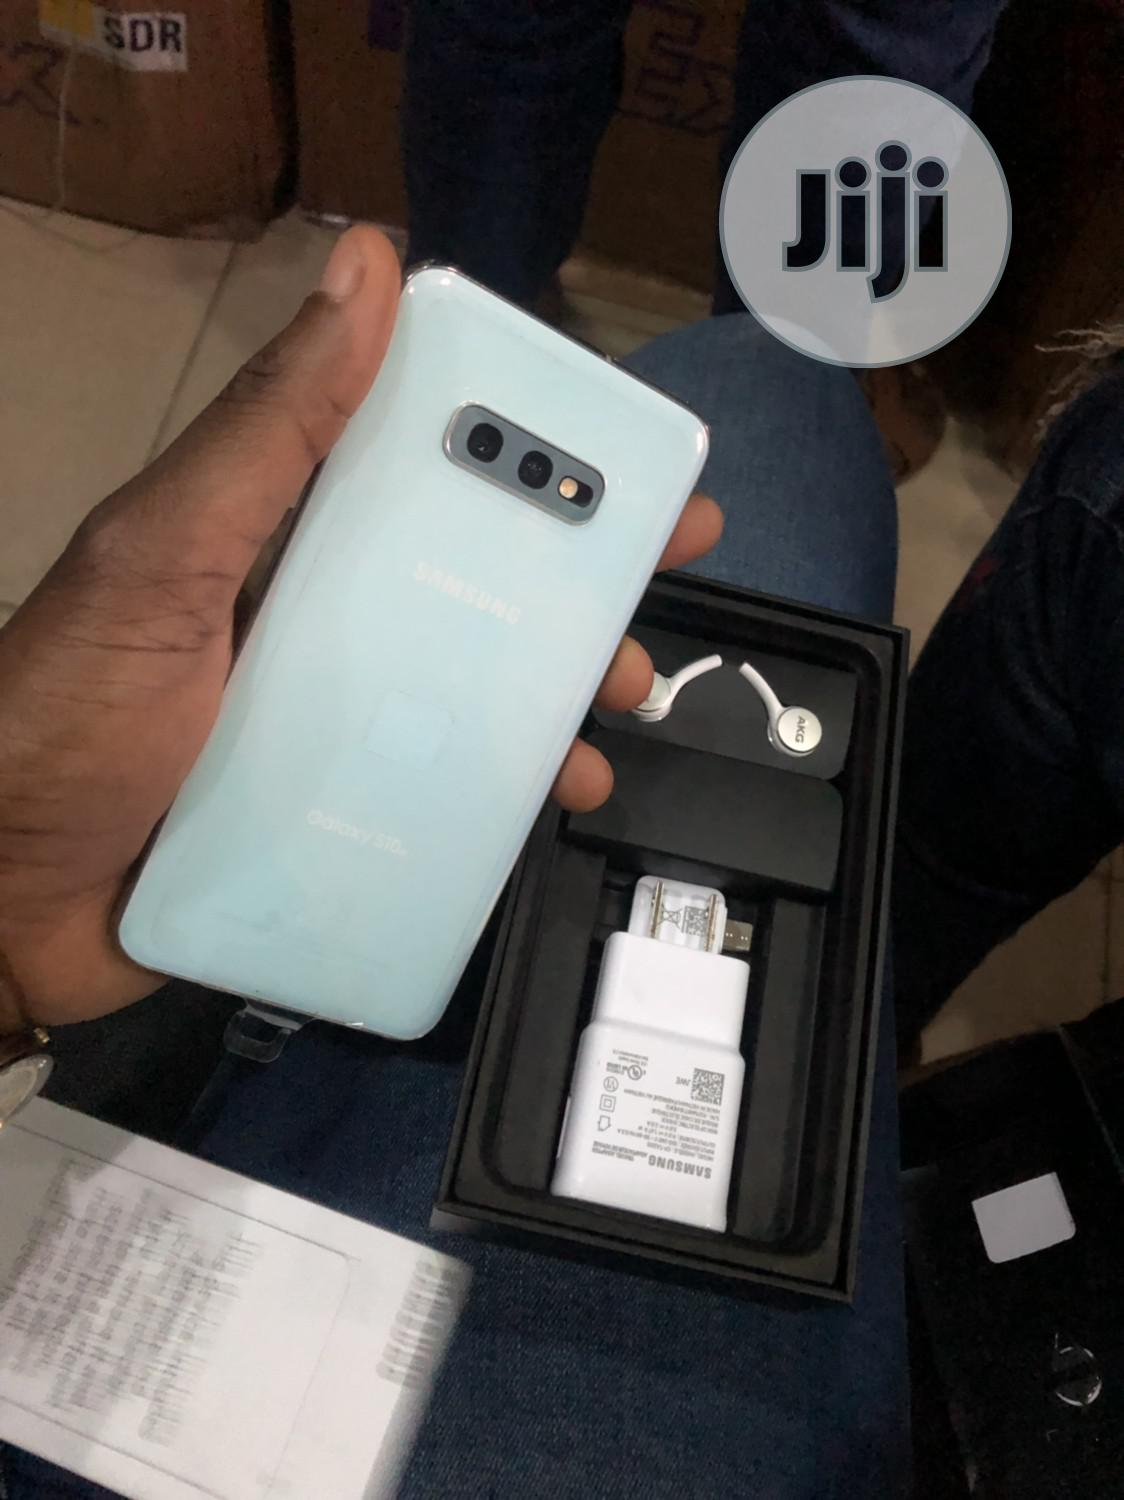 New Samsung Galaxy S10e 128 GB | Mobile Phones for sale in Ikeja, Lagos State, Nigeria